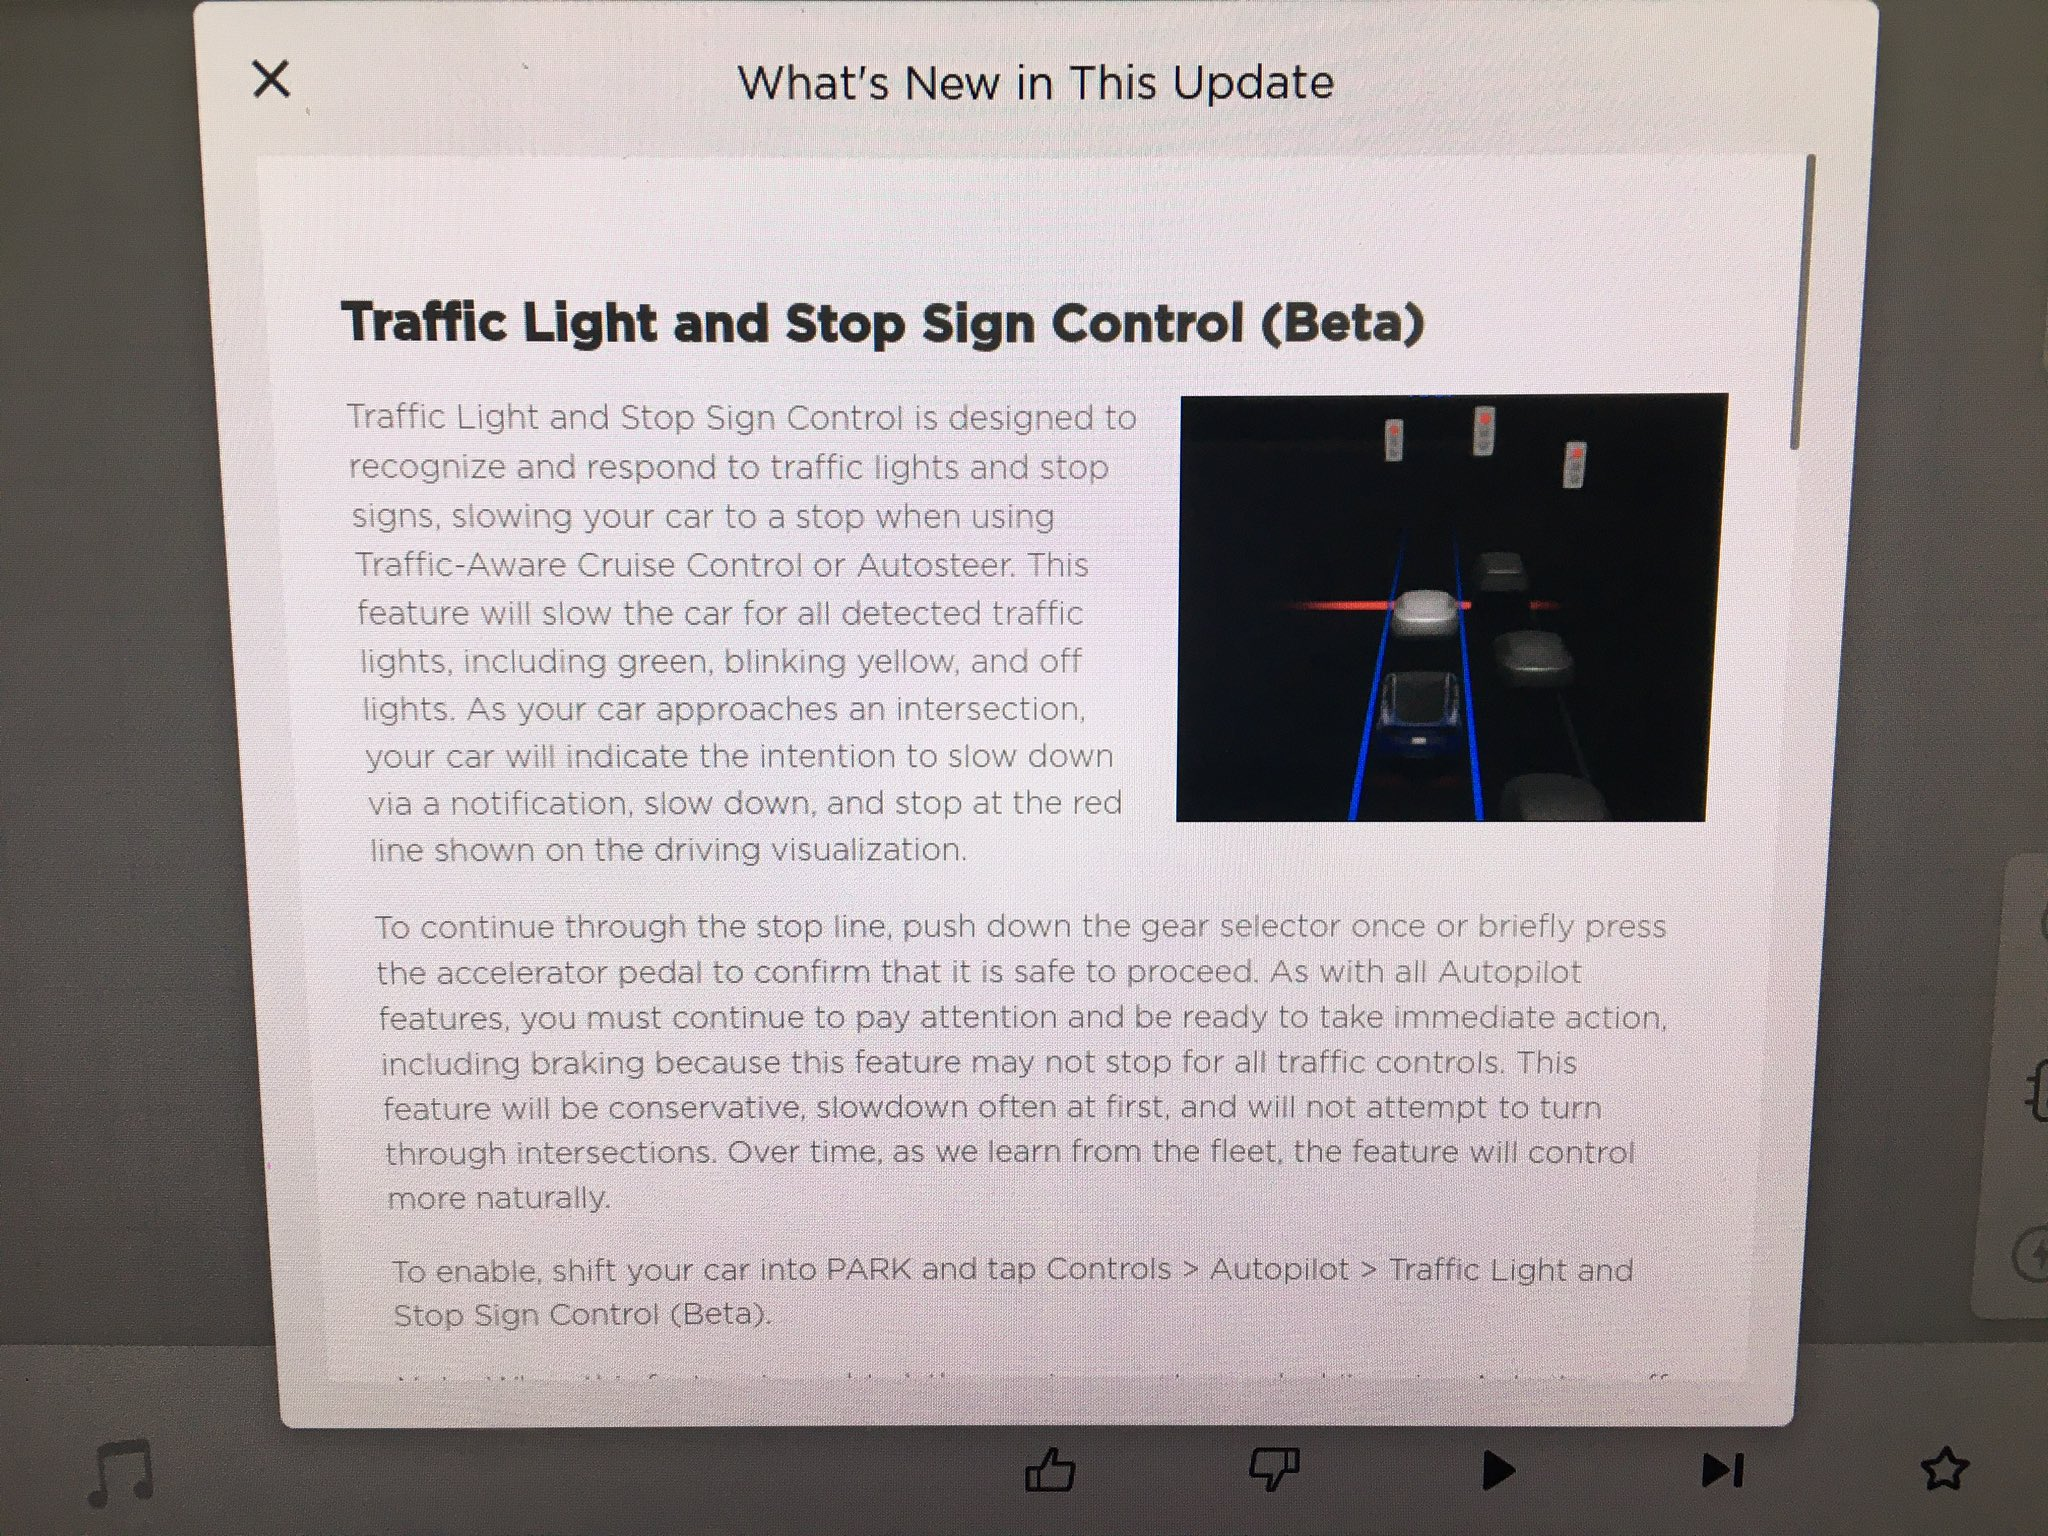 Tesla 2020.20.13 software update